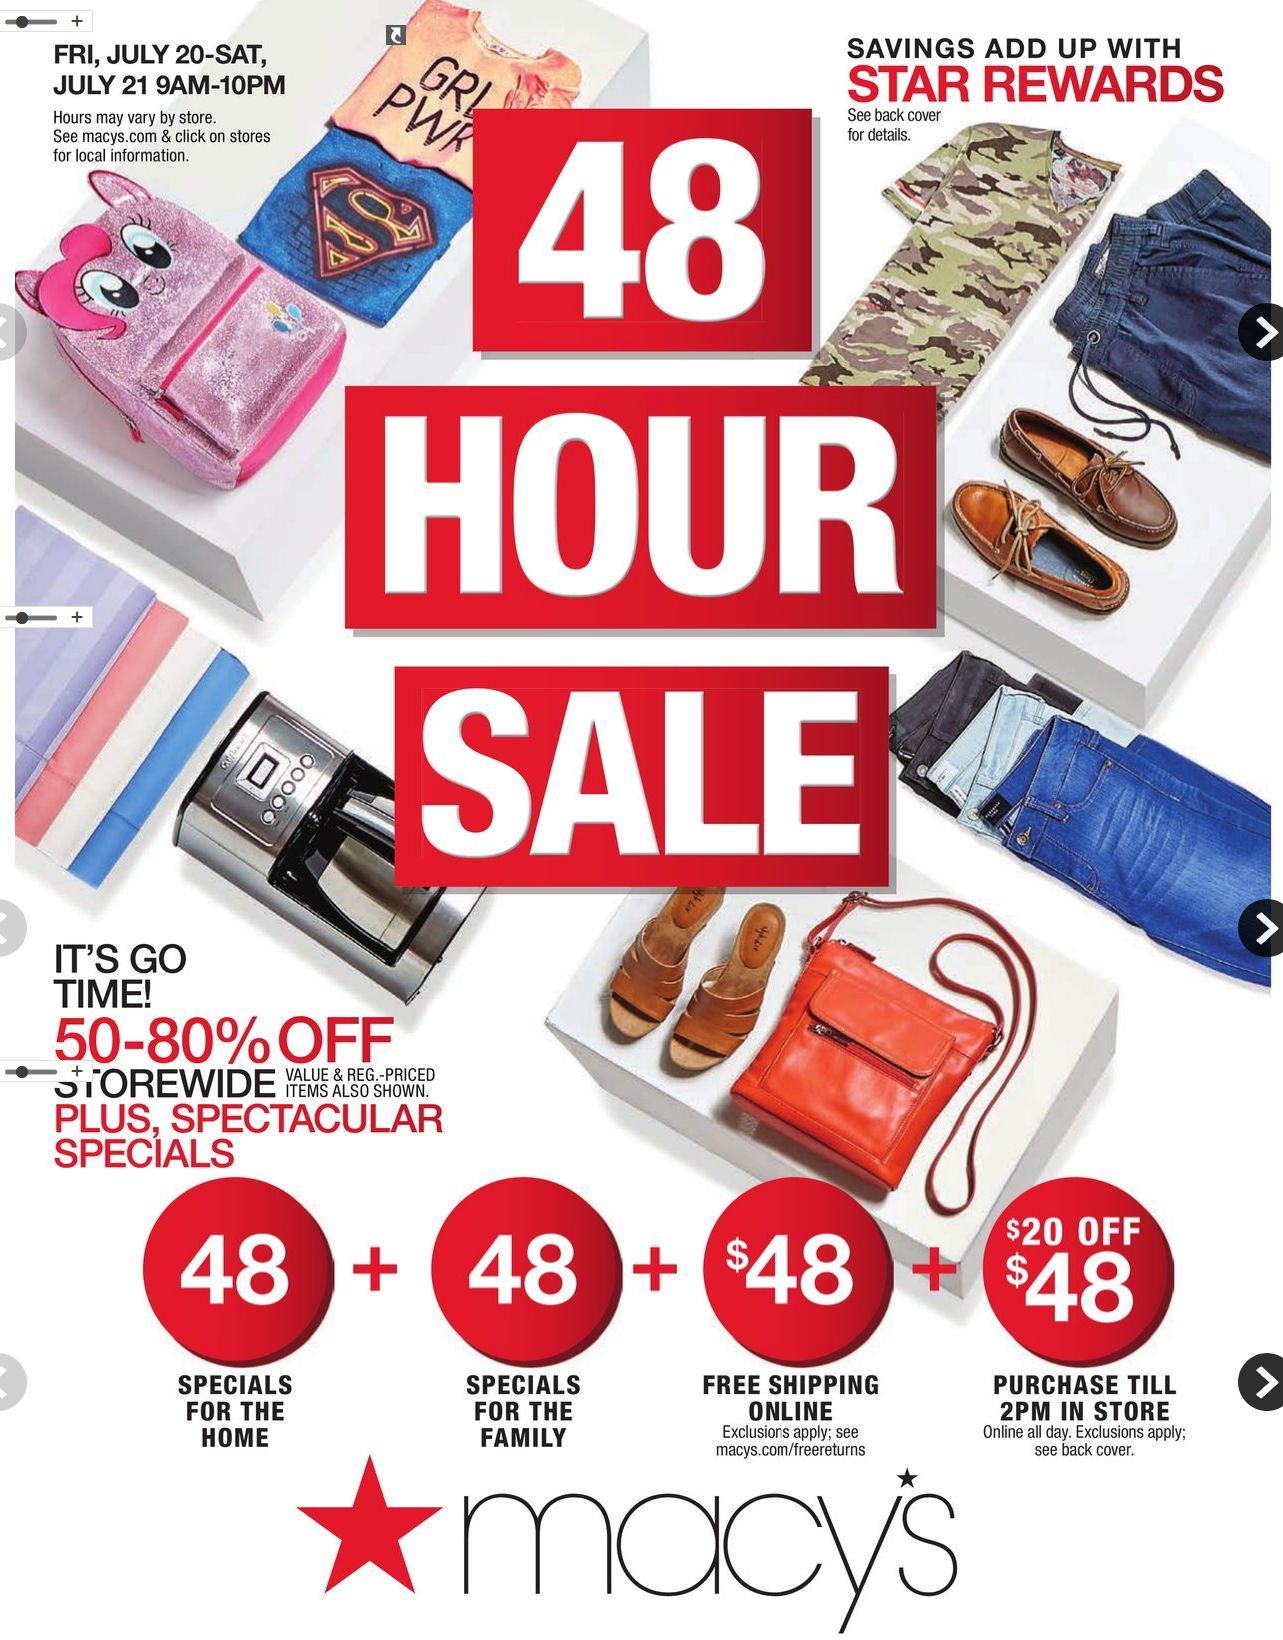 Macy S One Day Sale Catalog January 18 19 2019 Weeklyad123 Com Weekly Ad Circular Grocery Stores One Day Sale Macys Coupons Macys